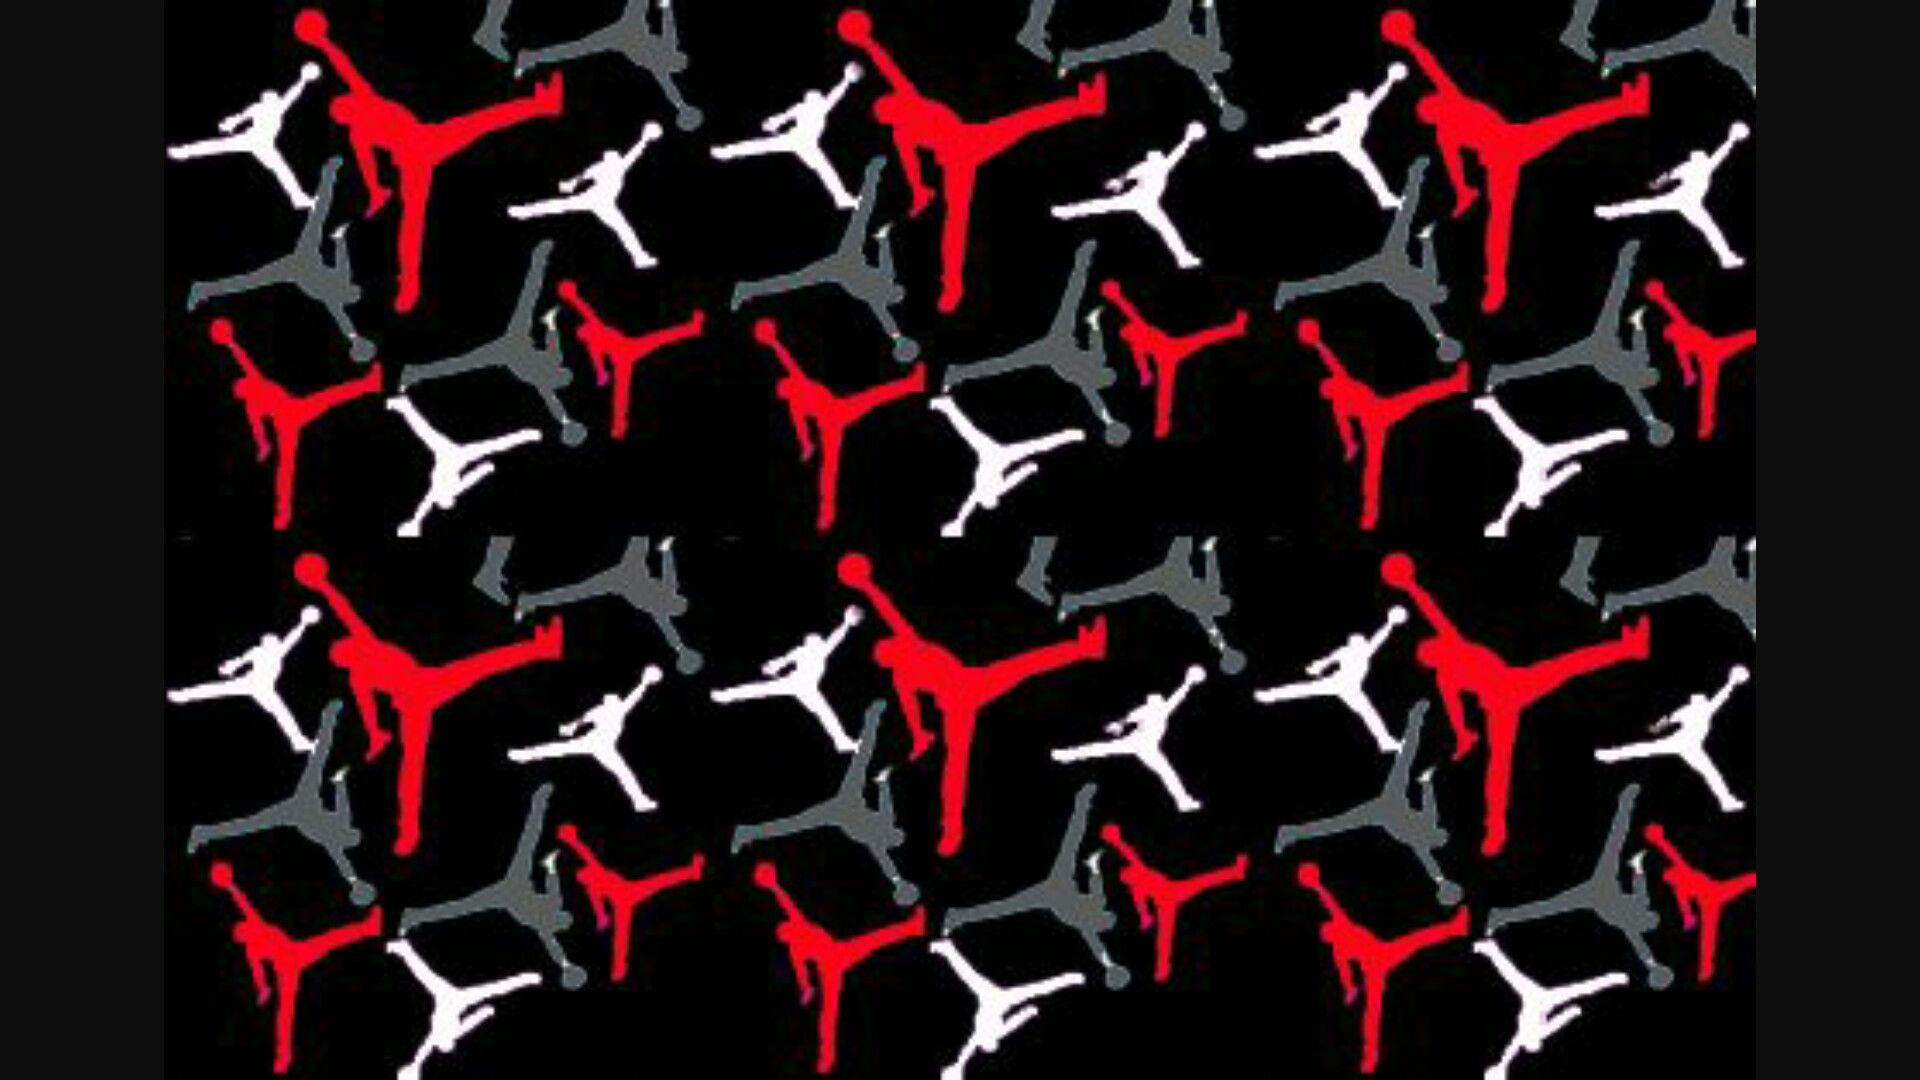 Air Jordan Cool Logo Logodix